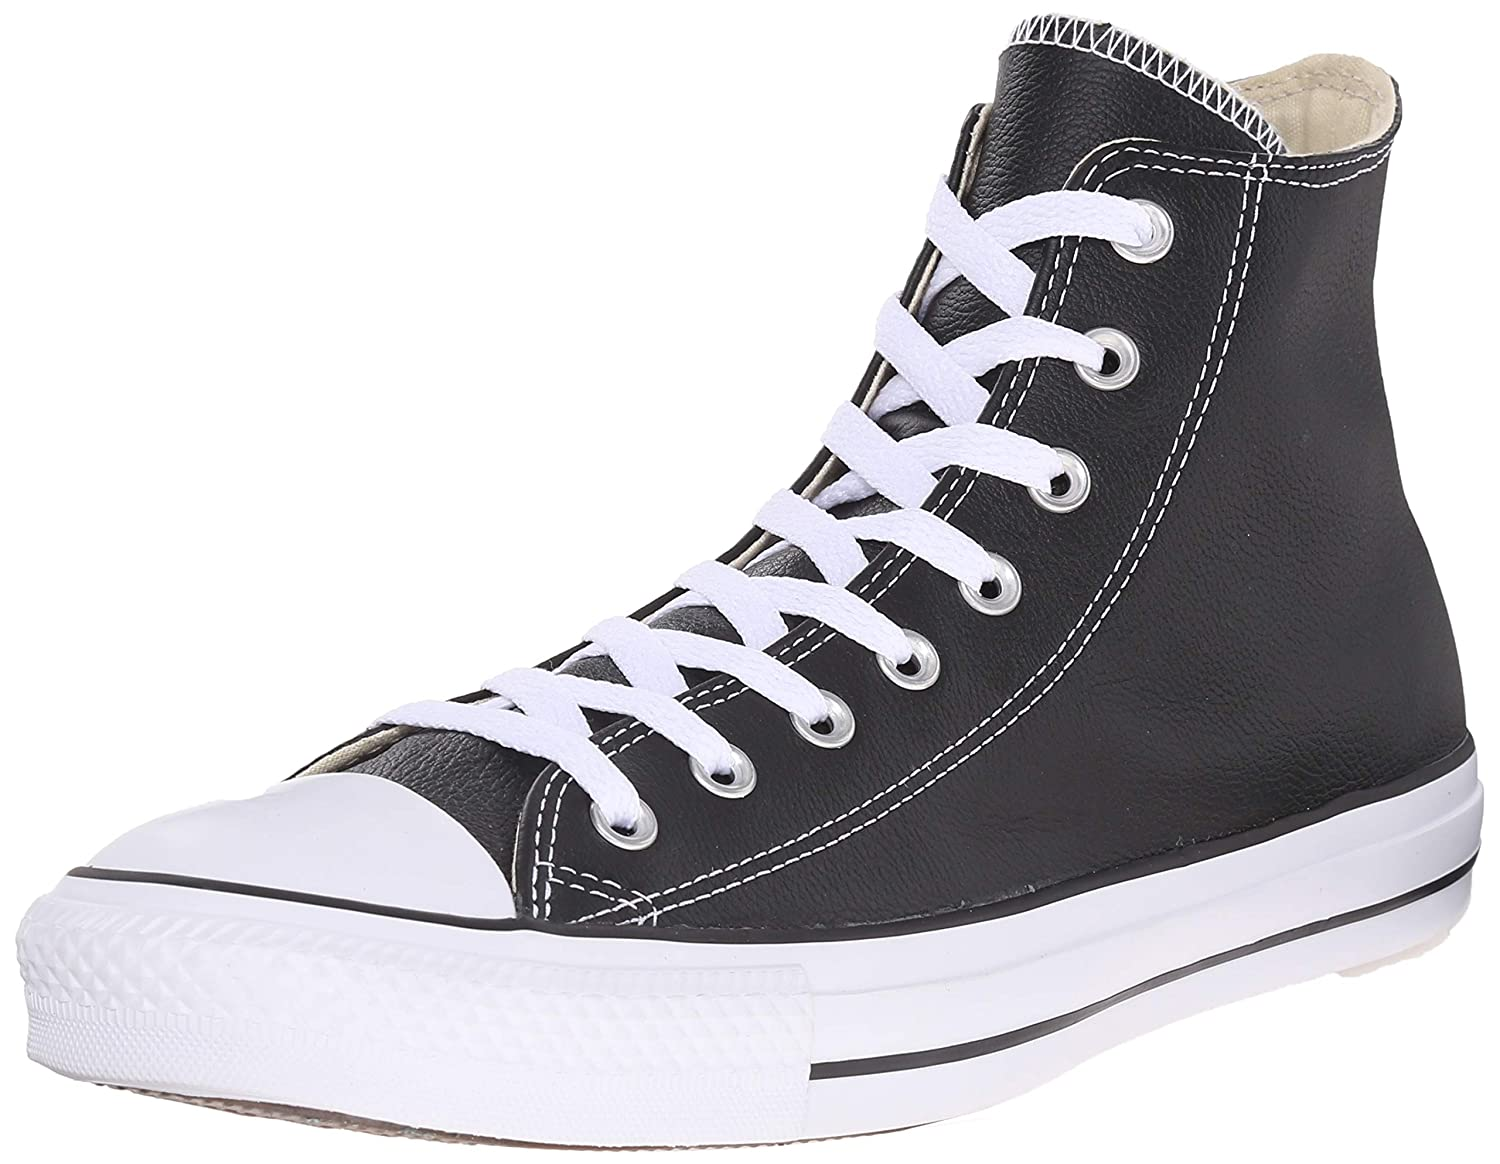 8e40379079f76 Converse Women's Chuck Taylor All Star Leather High Top Sneaker Unisex